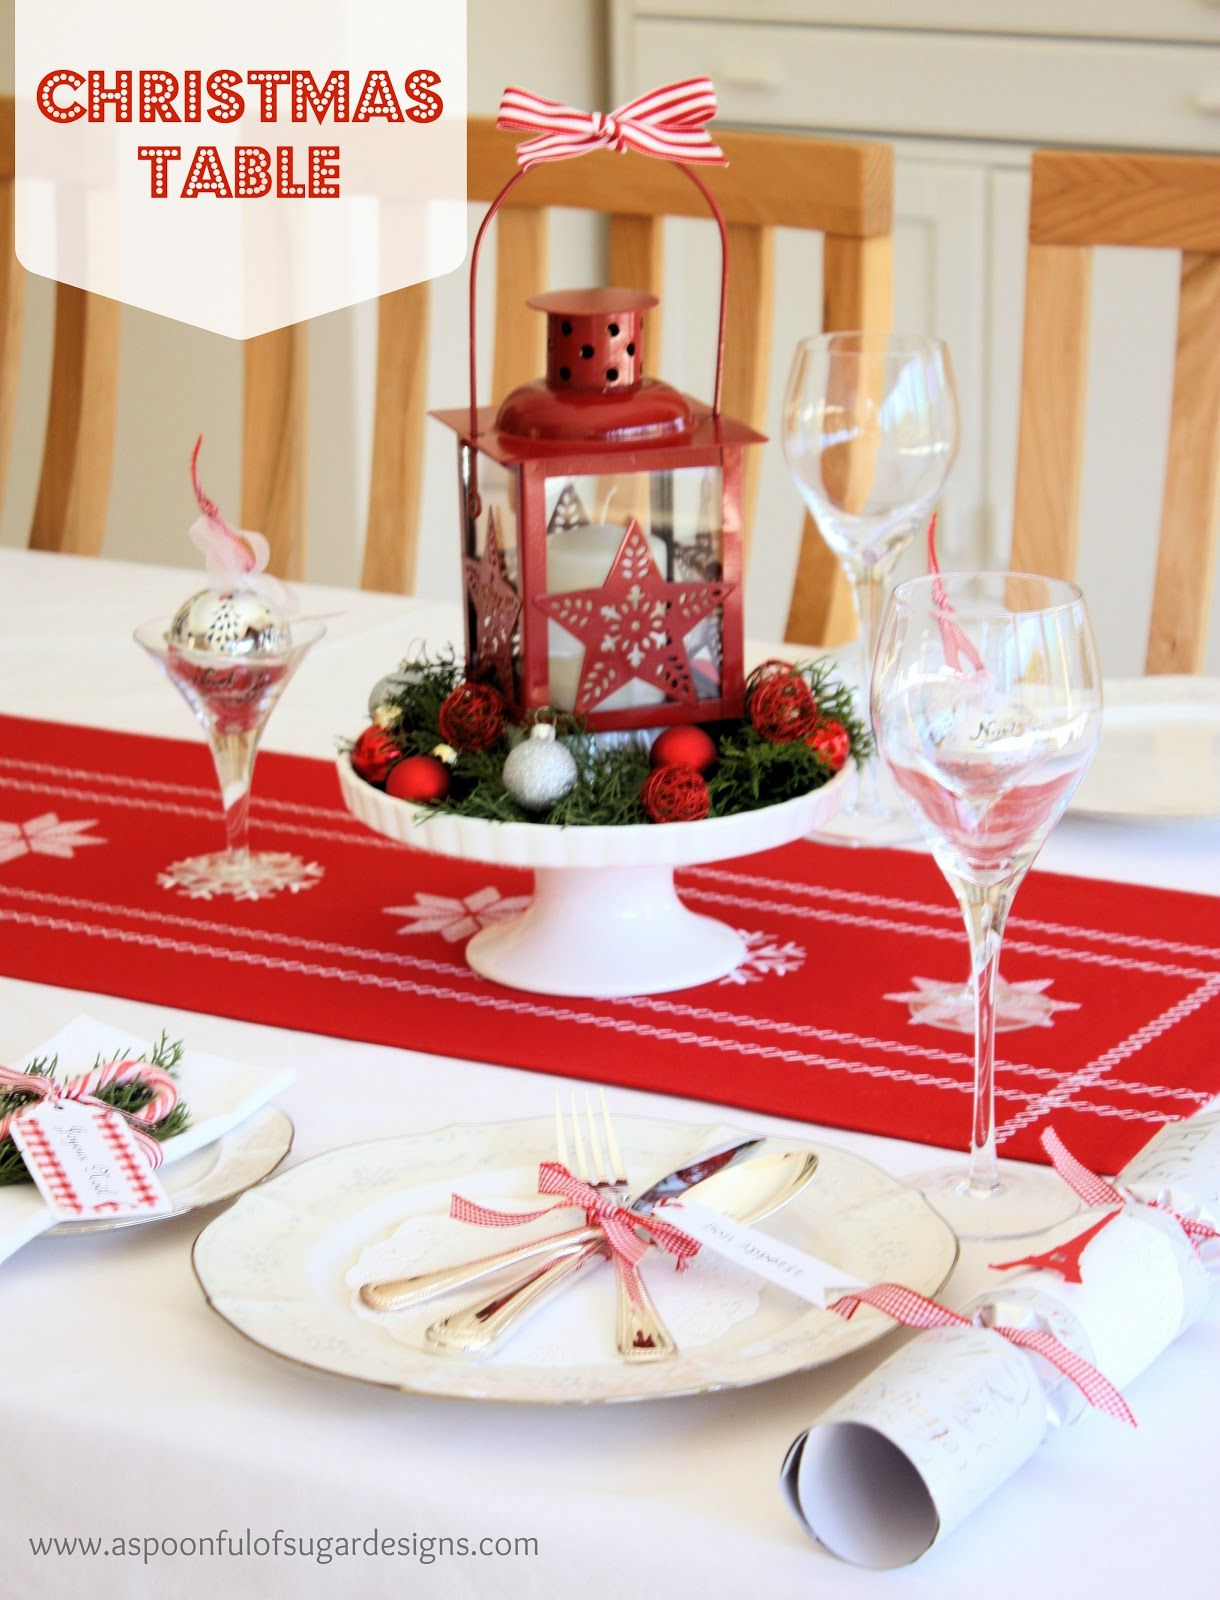 christmas table settings images | Our Christmas Table | A Spoonful ...